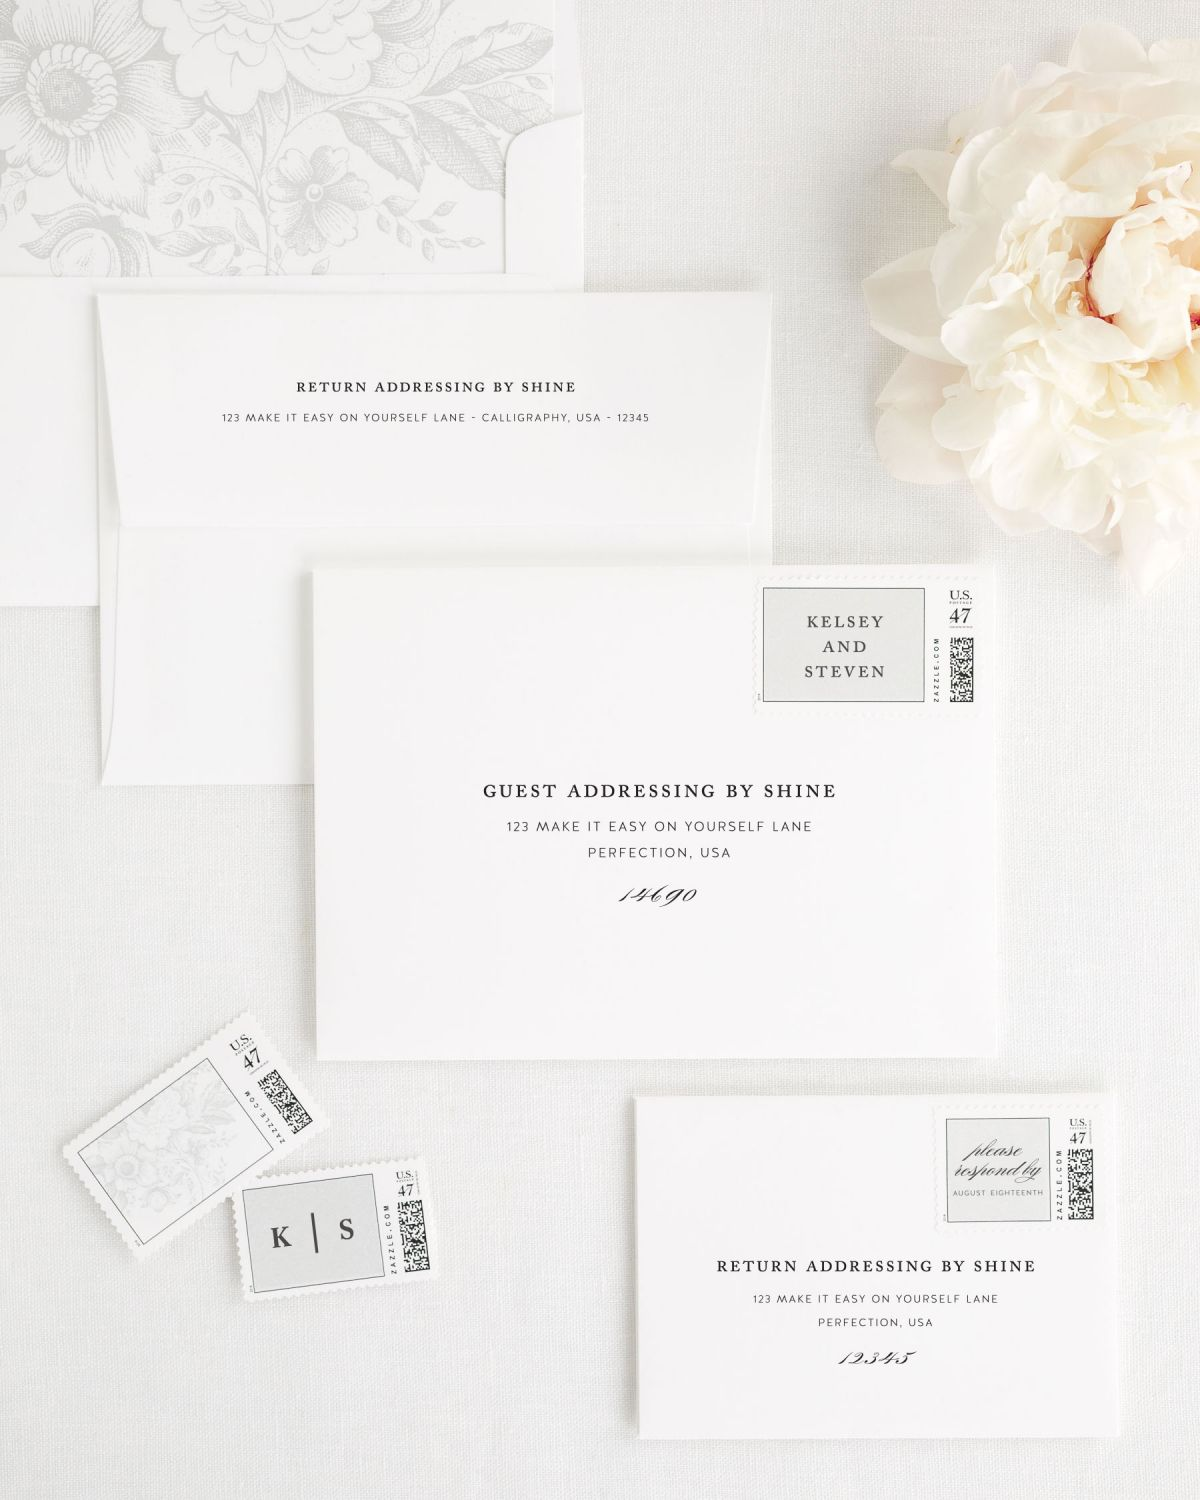 Wedding Invitation Envelopes with Guest Adressing and Personalized Stamps